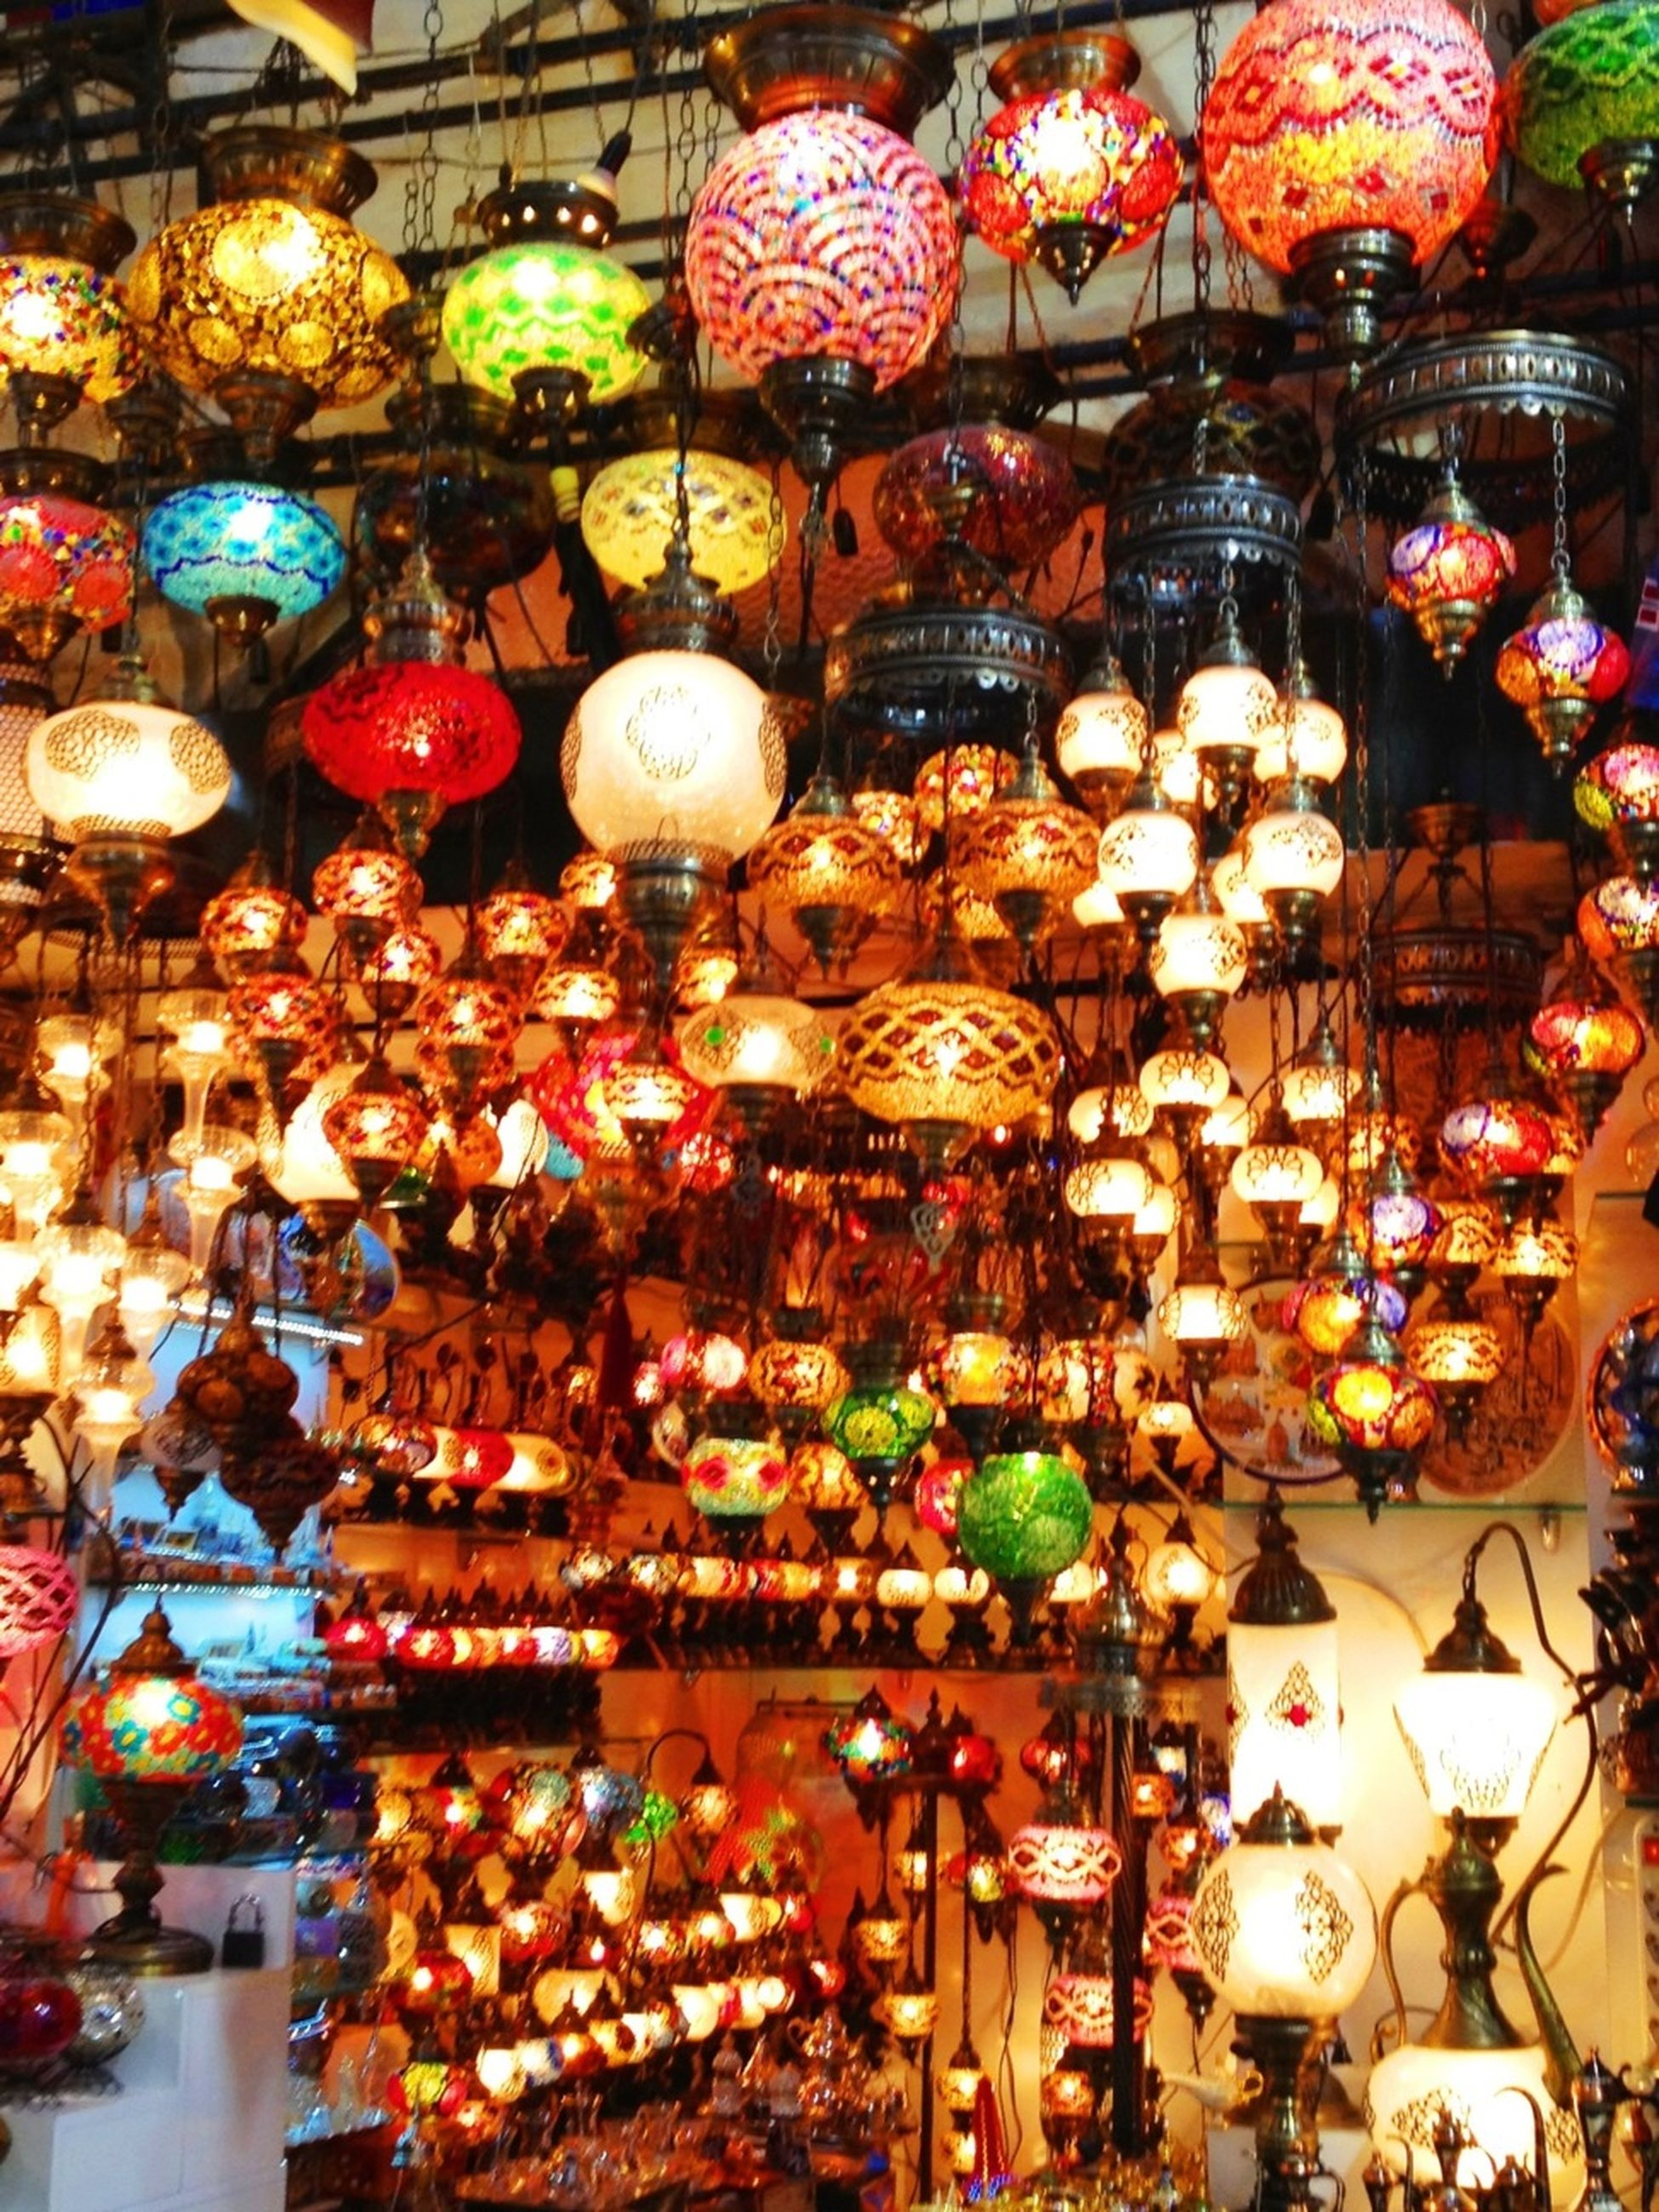 for sale, retail, abundance, large group of objects, variation, choice, indoors, arrangement, hanging, illuminated, market, decoration, market stall, lighting equipment, store, display, collection, in a row, lantern, multi colored